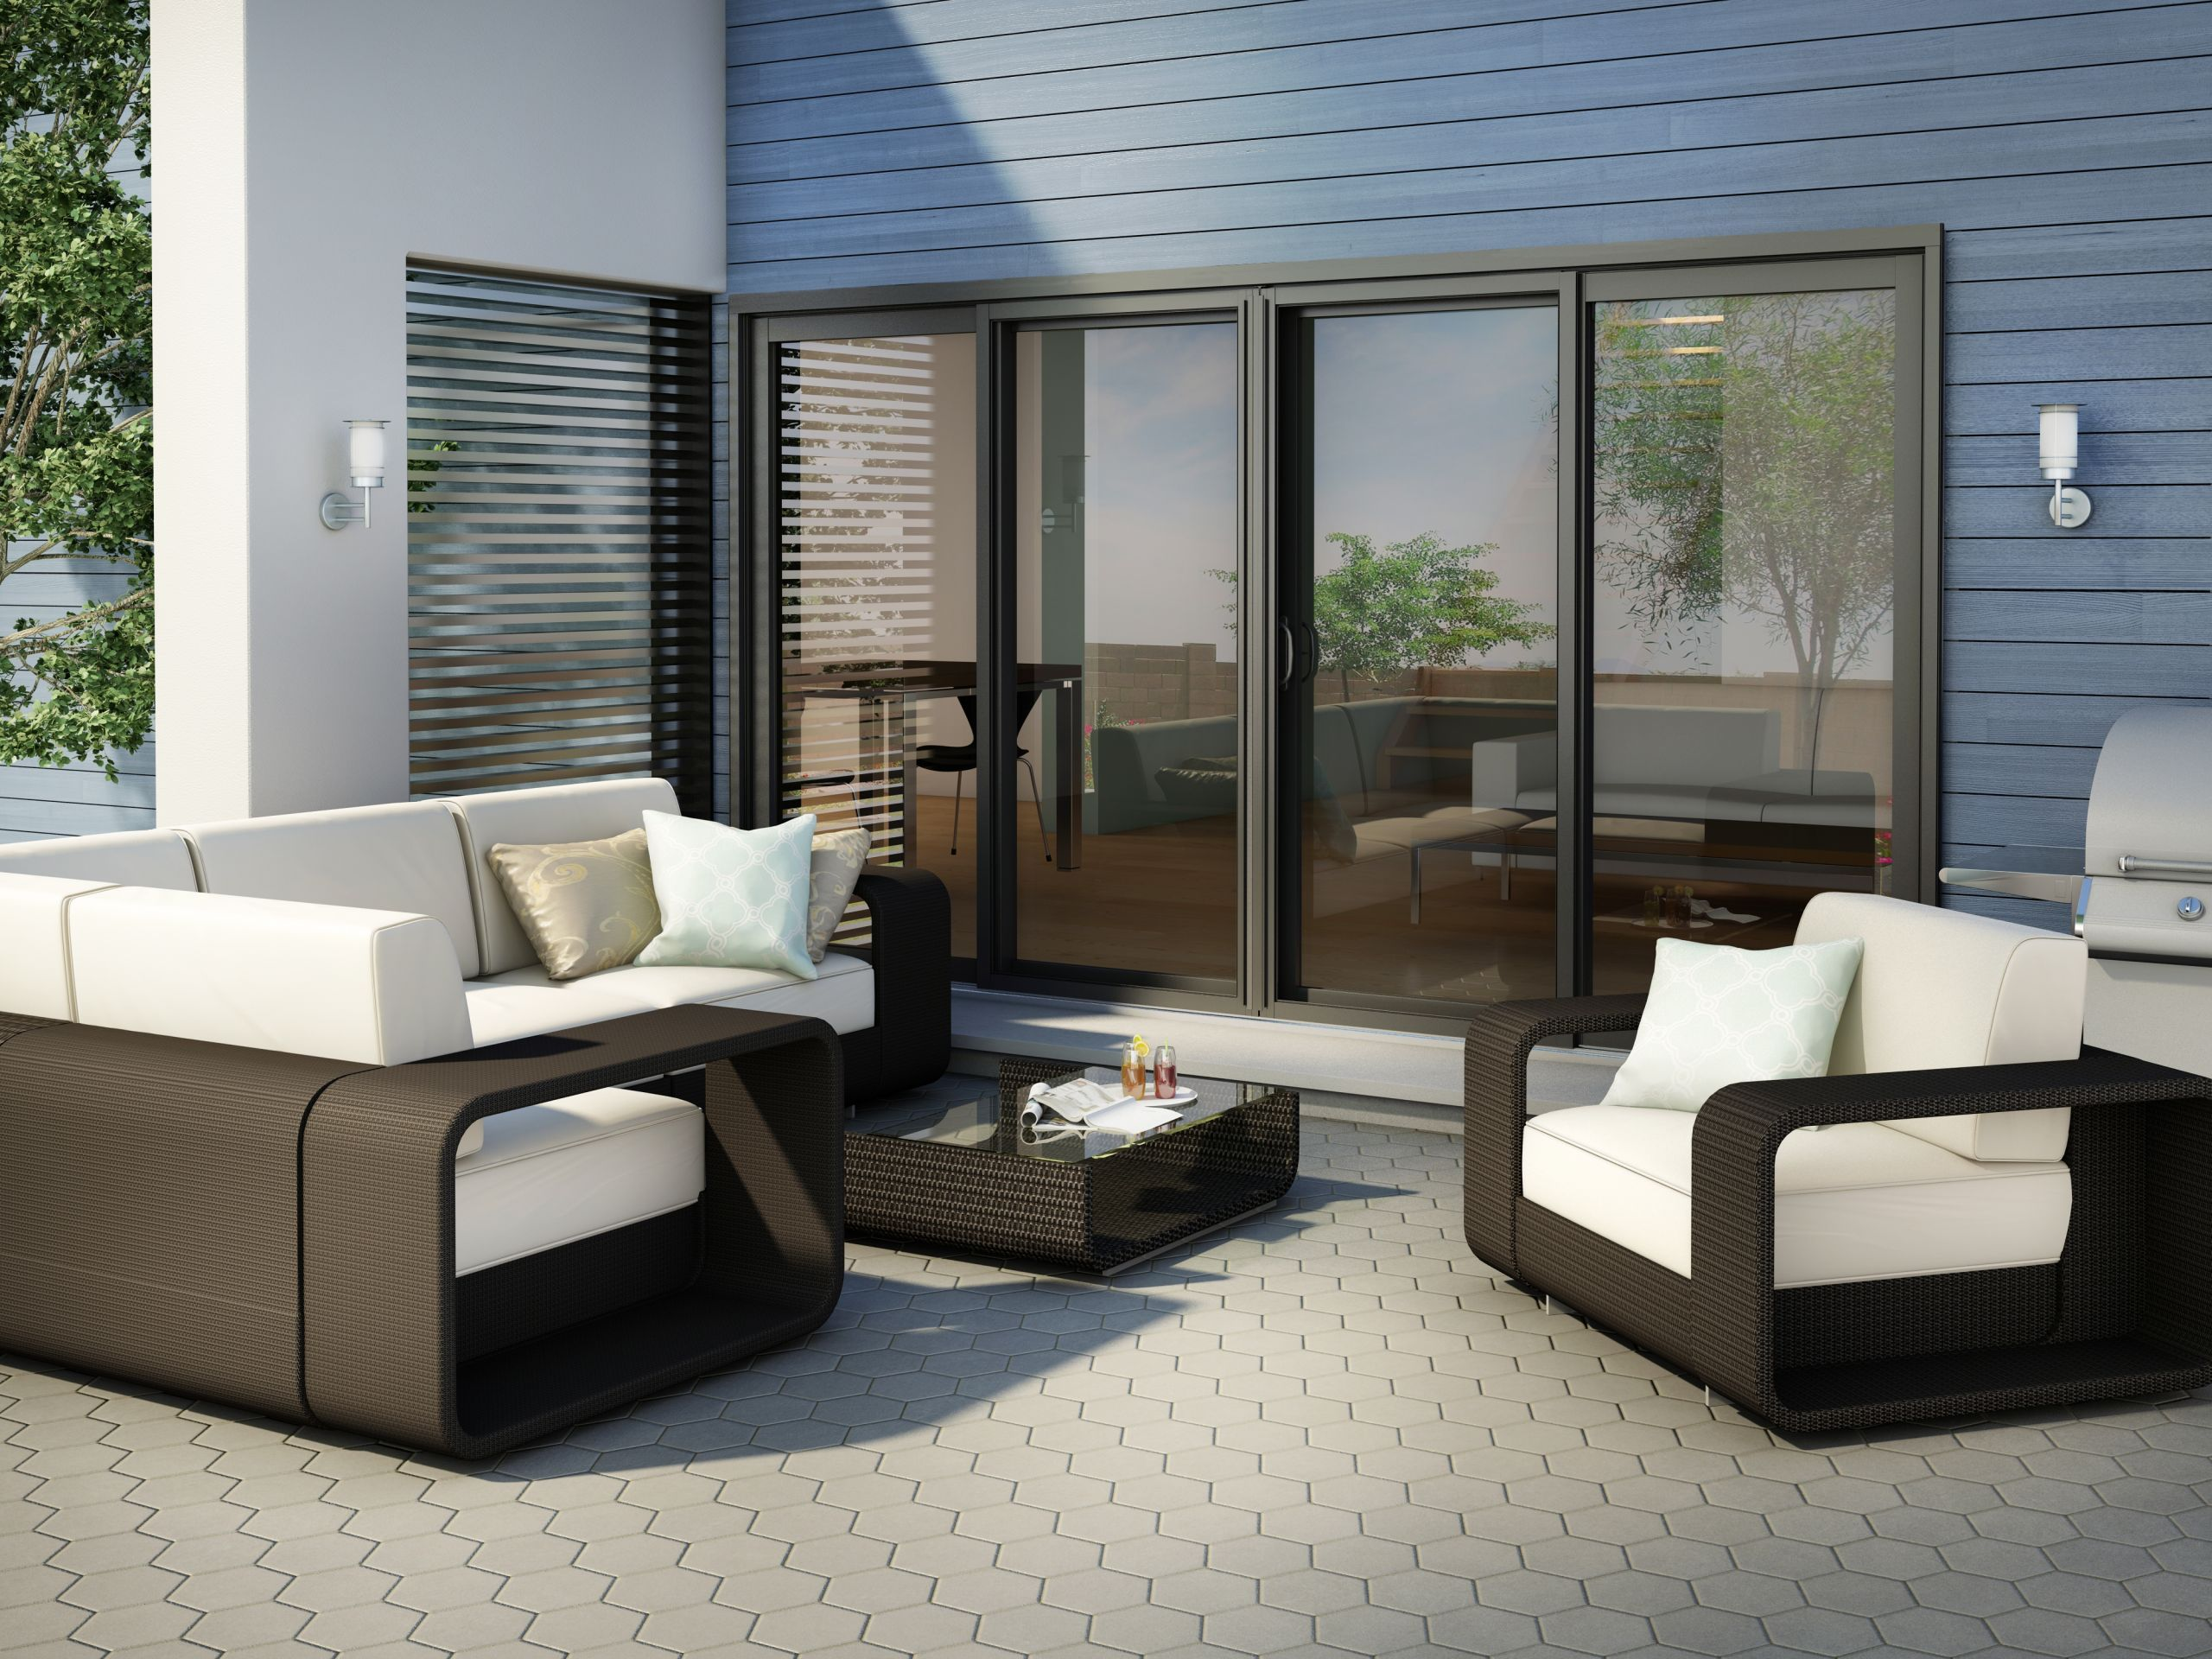 Sliding Patio Door Replacement for Residential Home